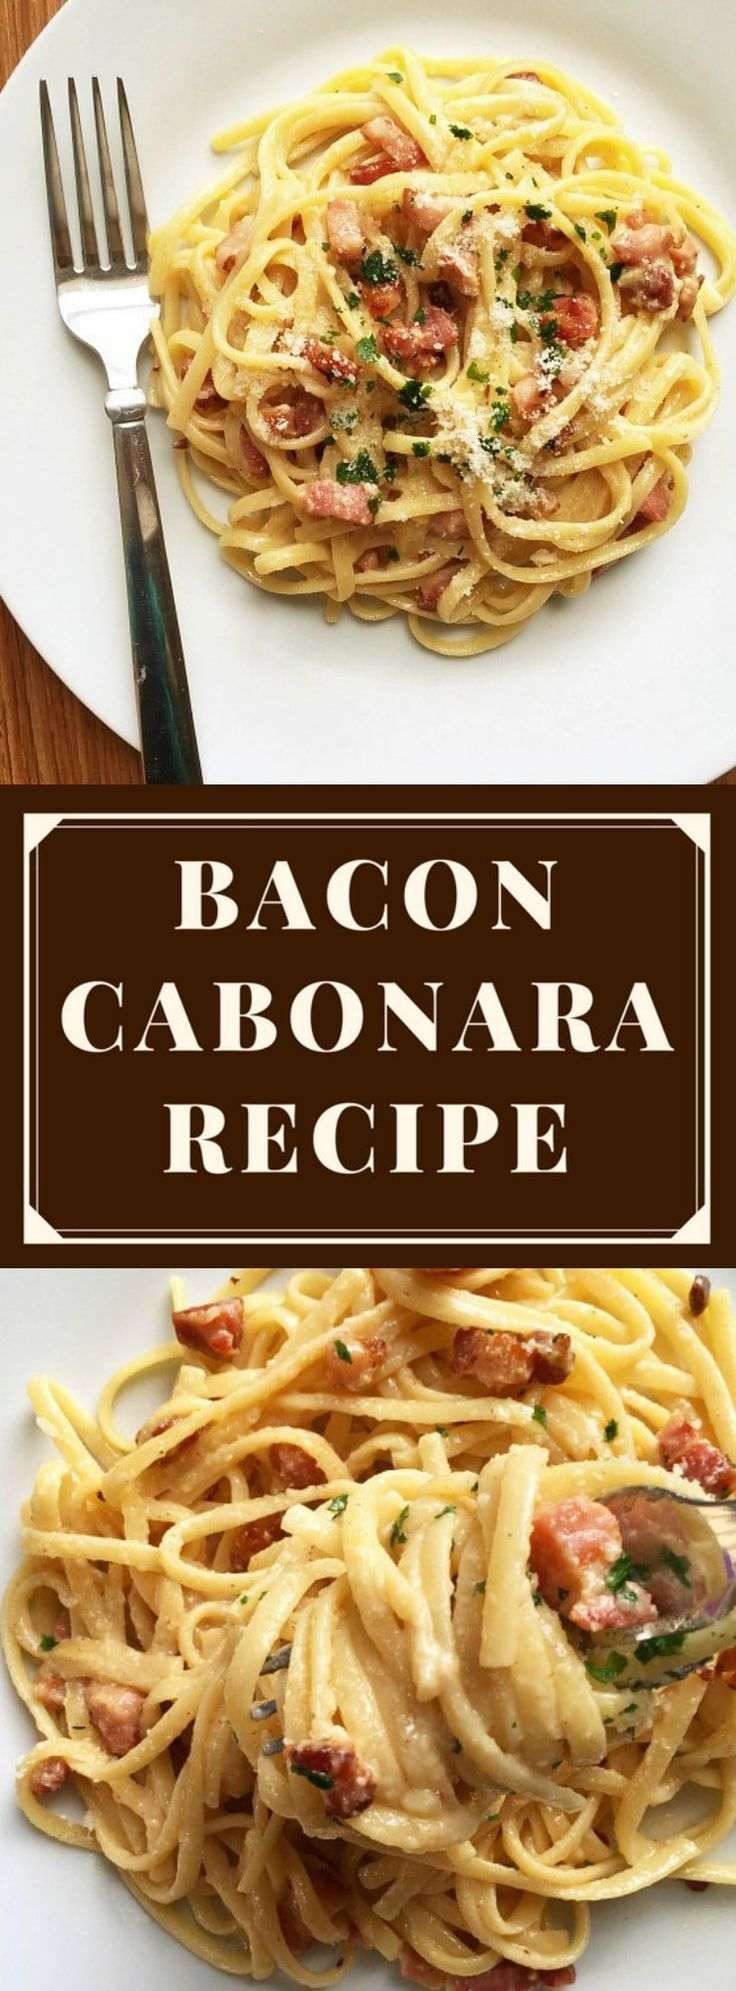 Bacon Carbonara ~ with parmesan cheese and eggs...no cream, no complicated sauces...just the real deal! #carbonara, #spaghetticarbonara, #baconcarbonara